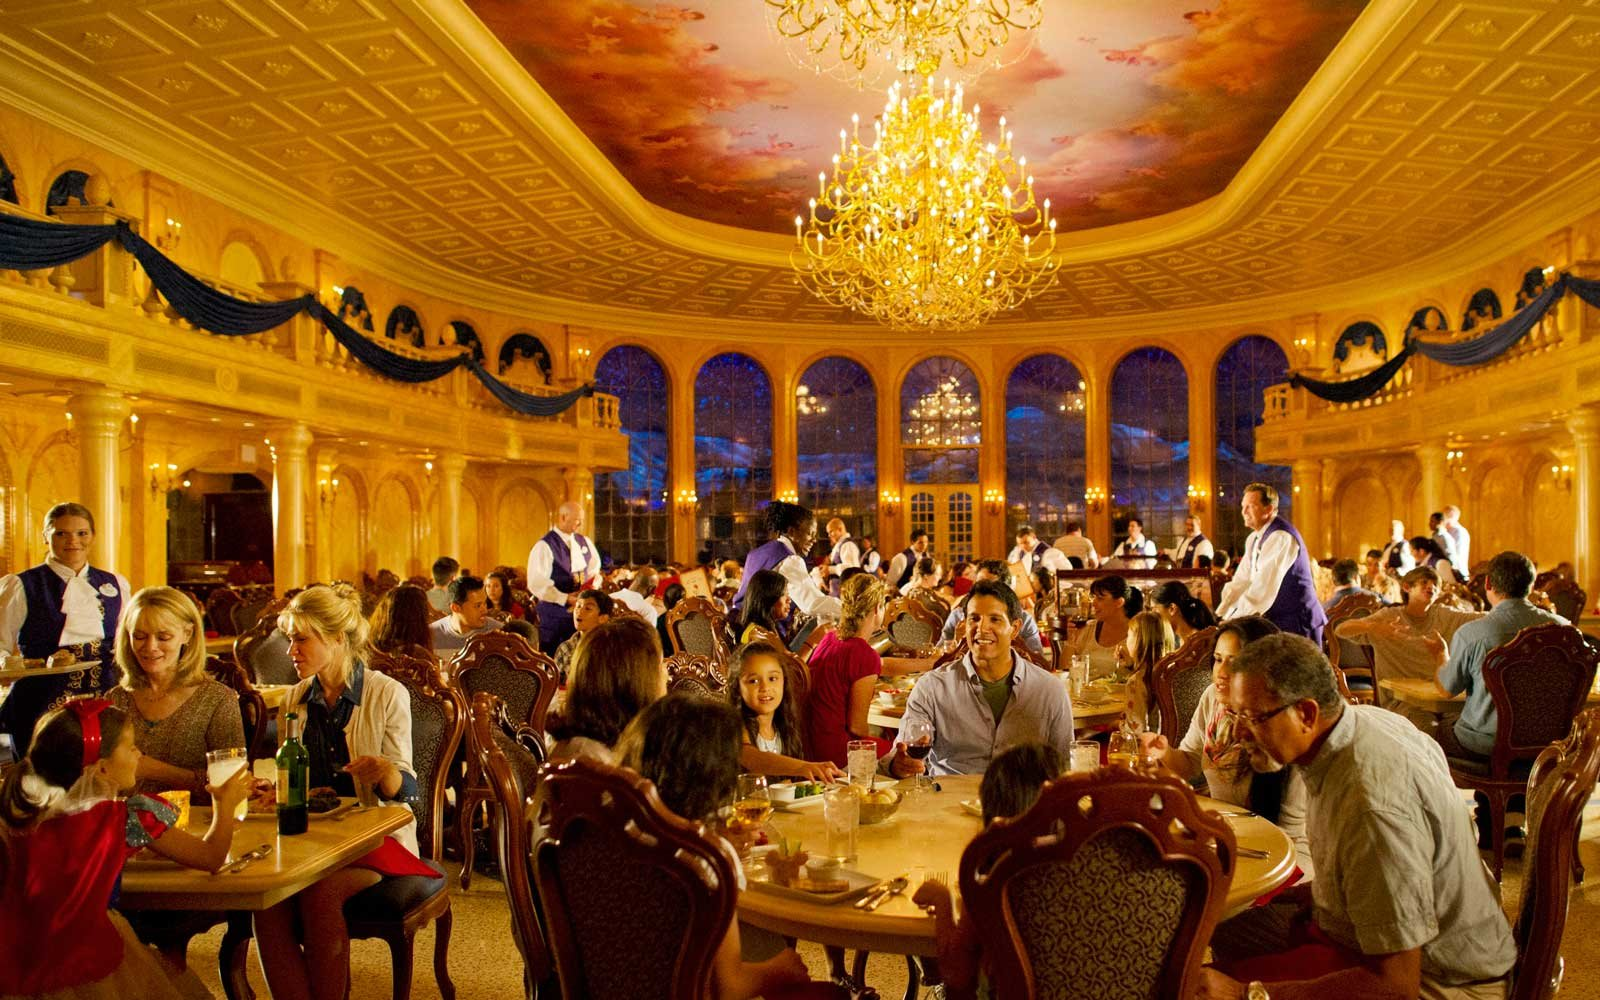 The Dining Reservations website now opens at approximately 5:45 AM.